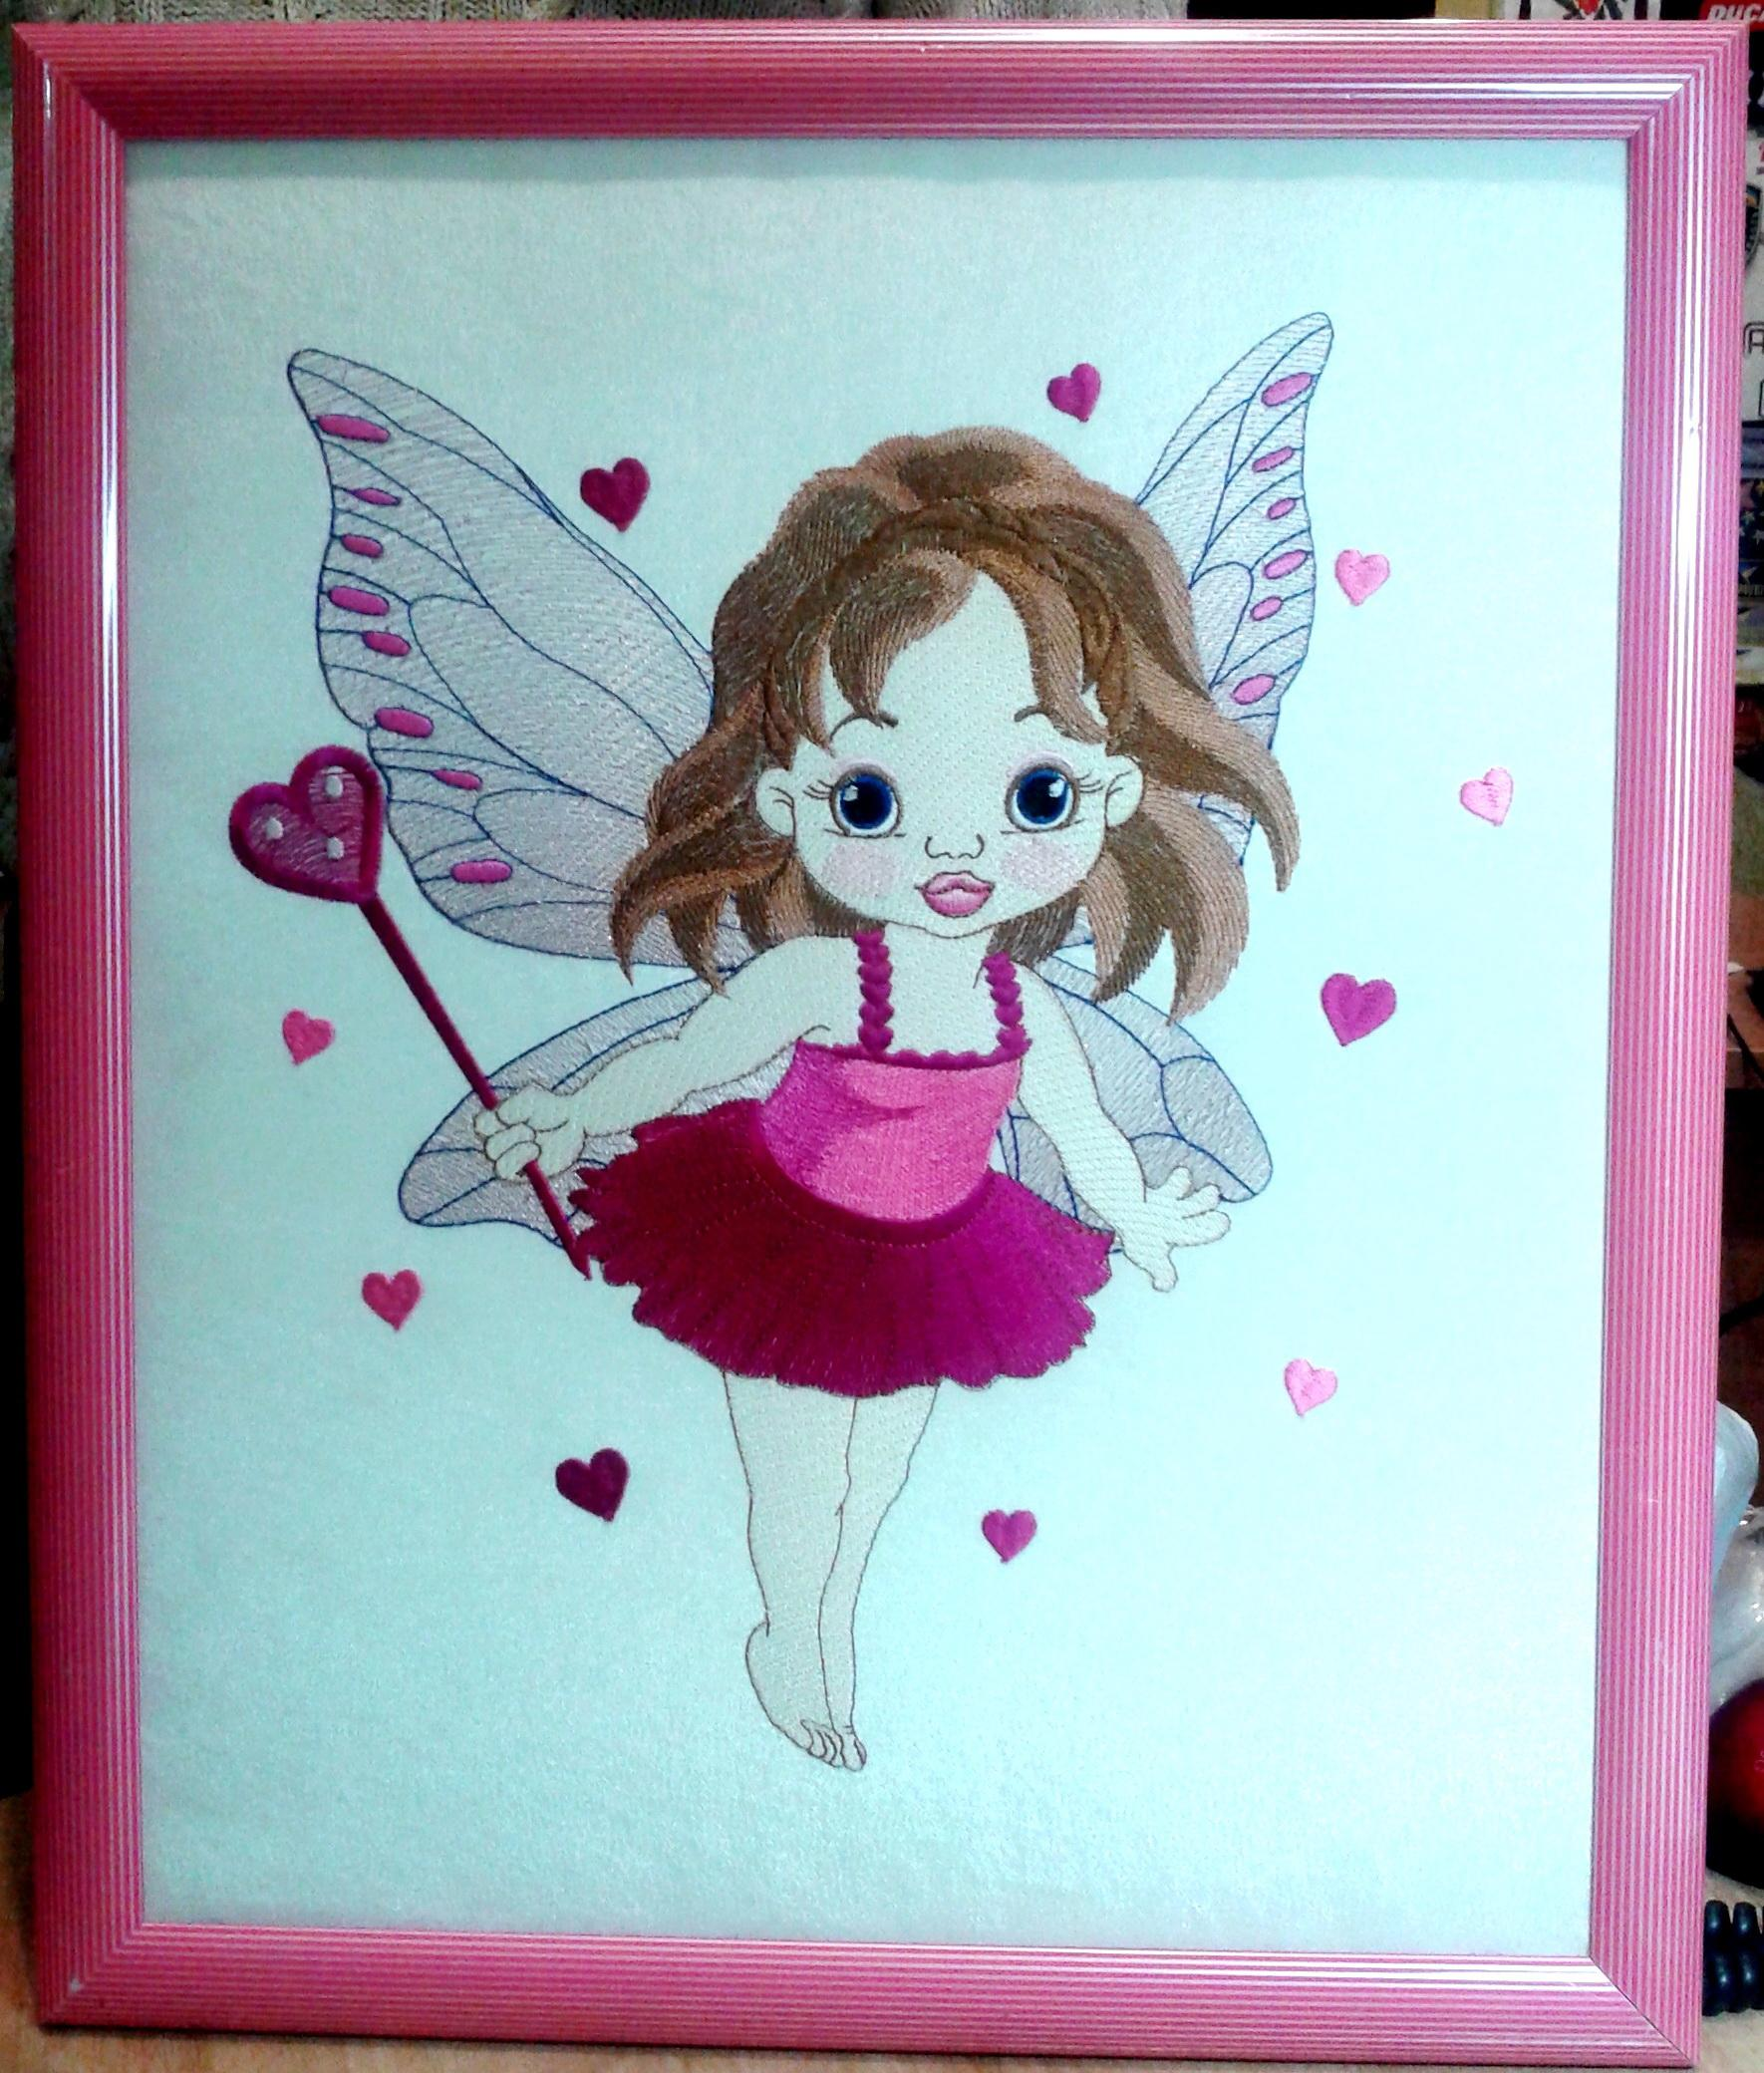 Framed Baby love fairy embroidery design